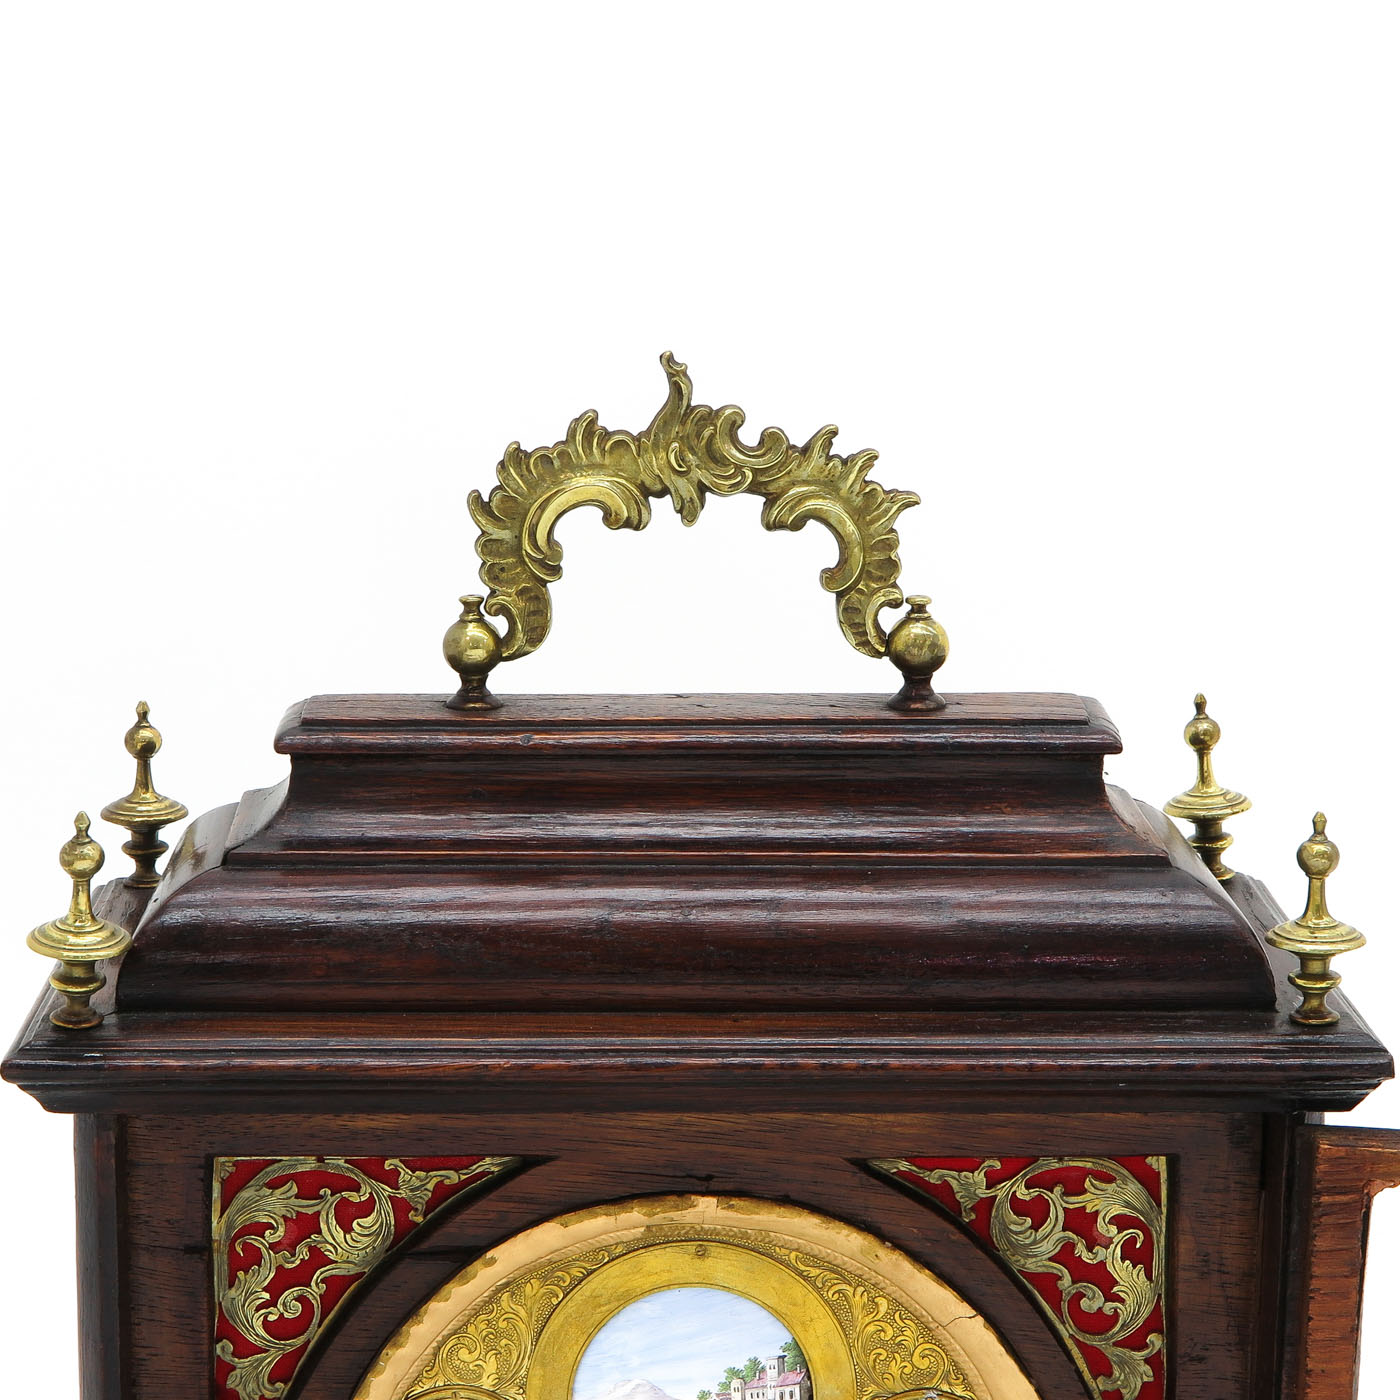 Lot 1130 - A Viennese Table clock